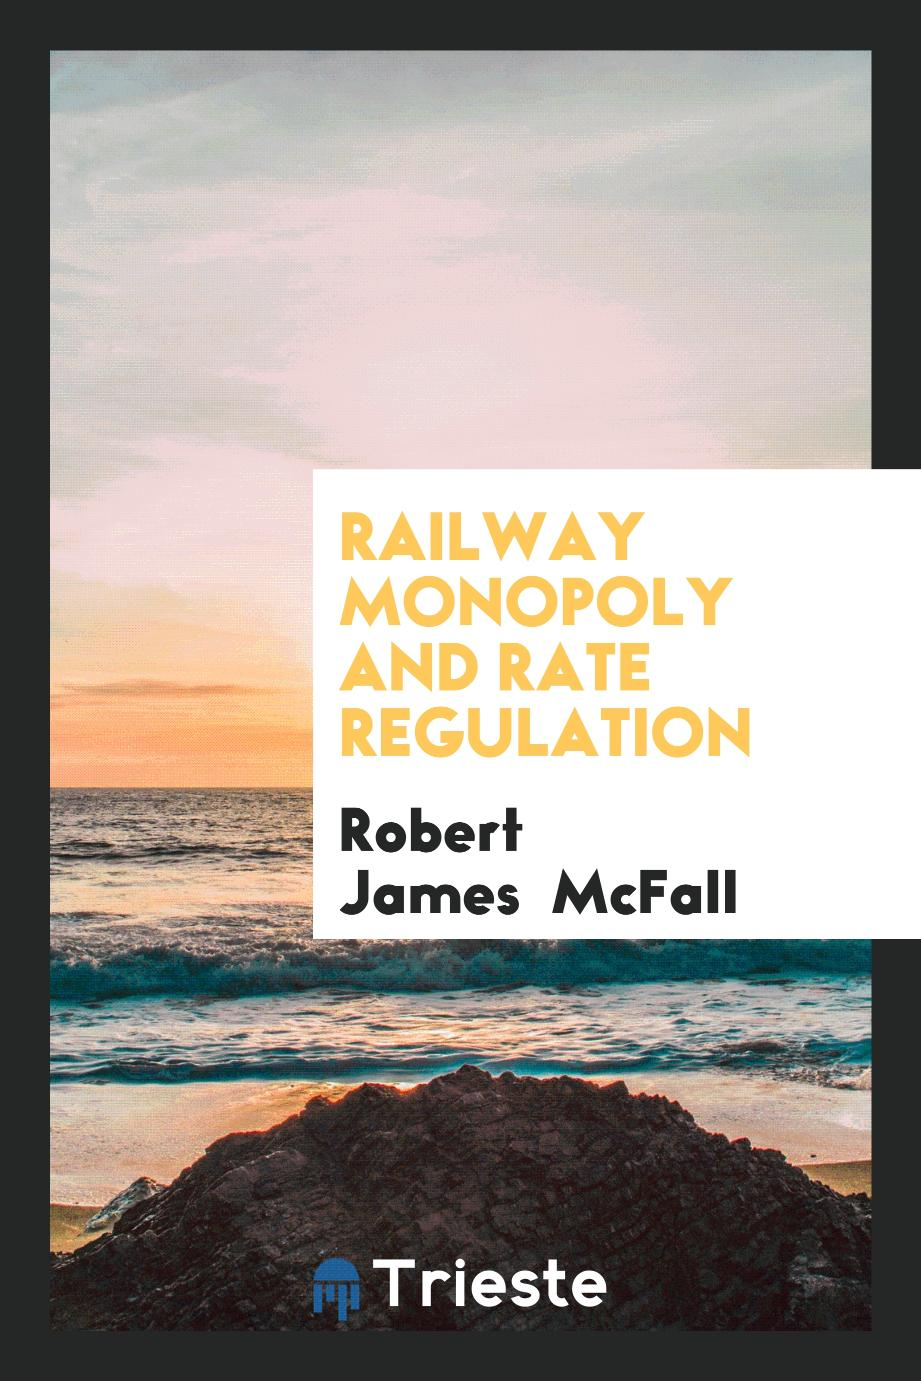 Railway Monopoly and Rate Regulation